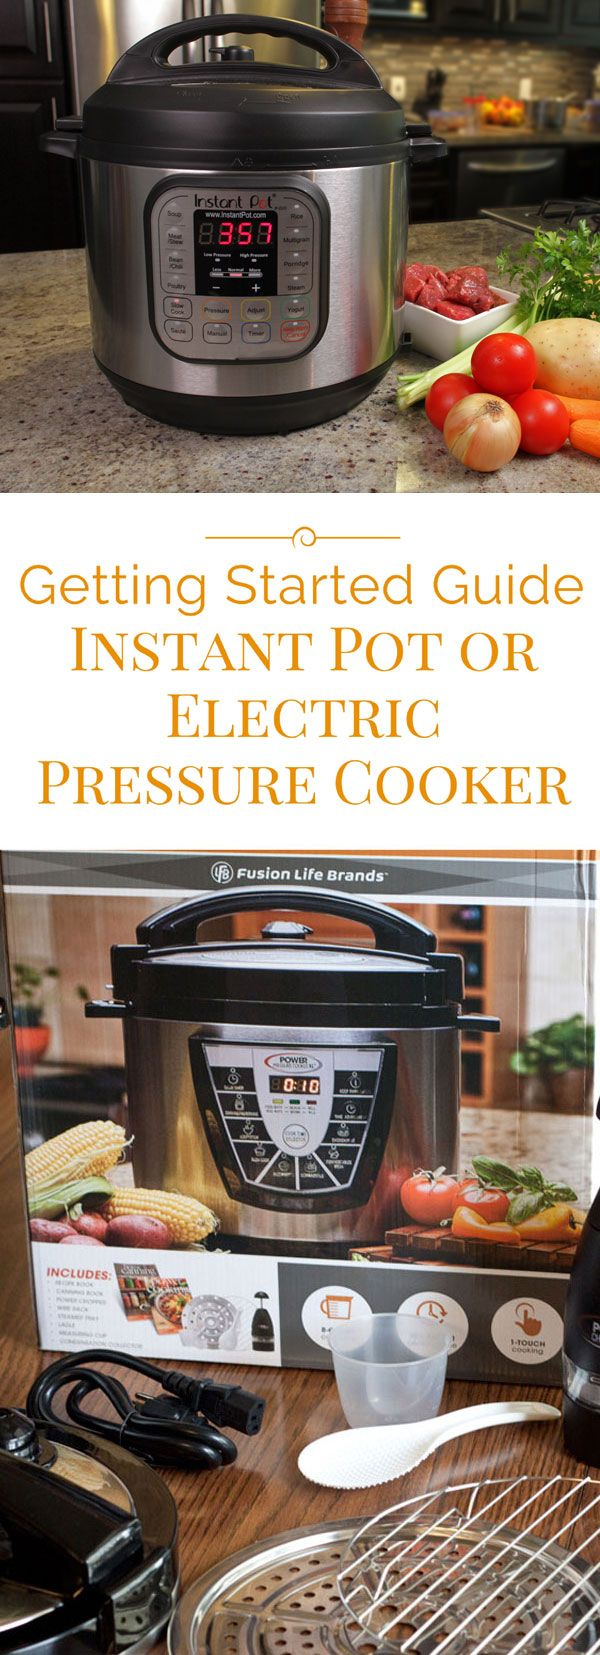 If you're just getting started with your new electric pressure cooker or Instant Pot, or even if you've had it for a while, you may have questions and I have answers.